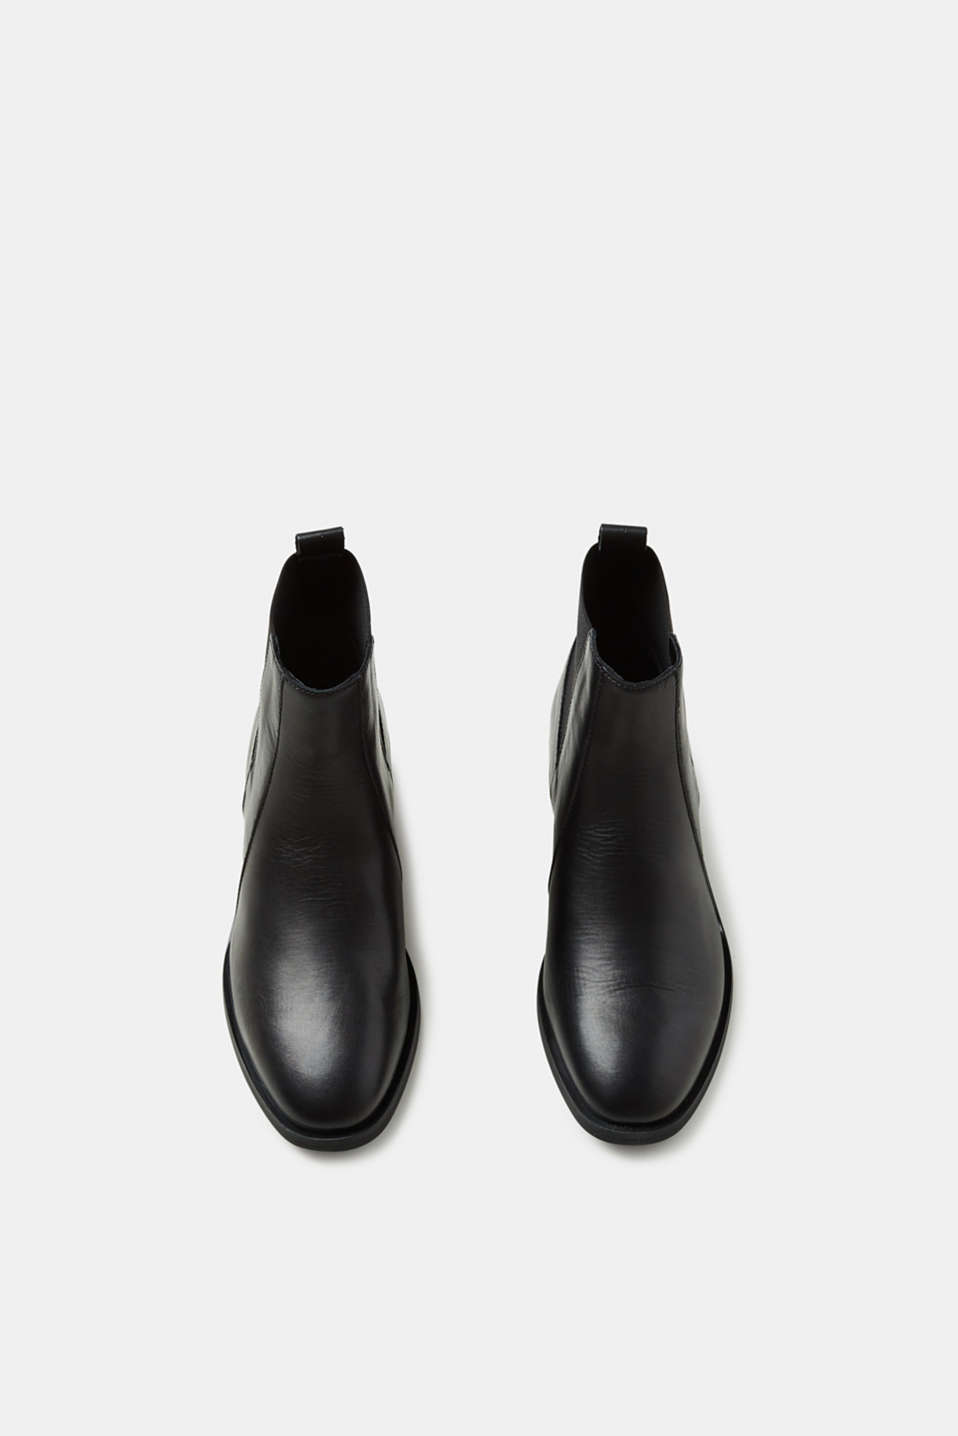 Chelsea boot made of leather